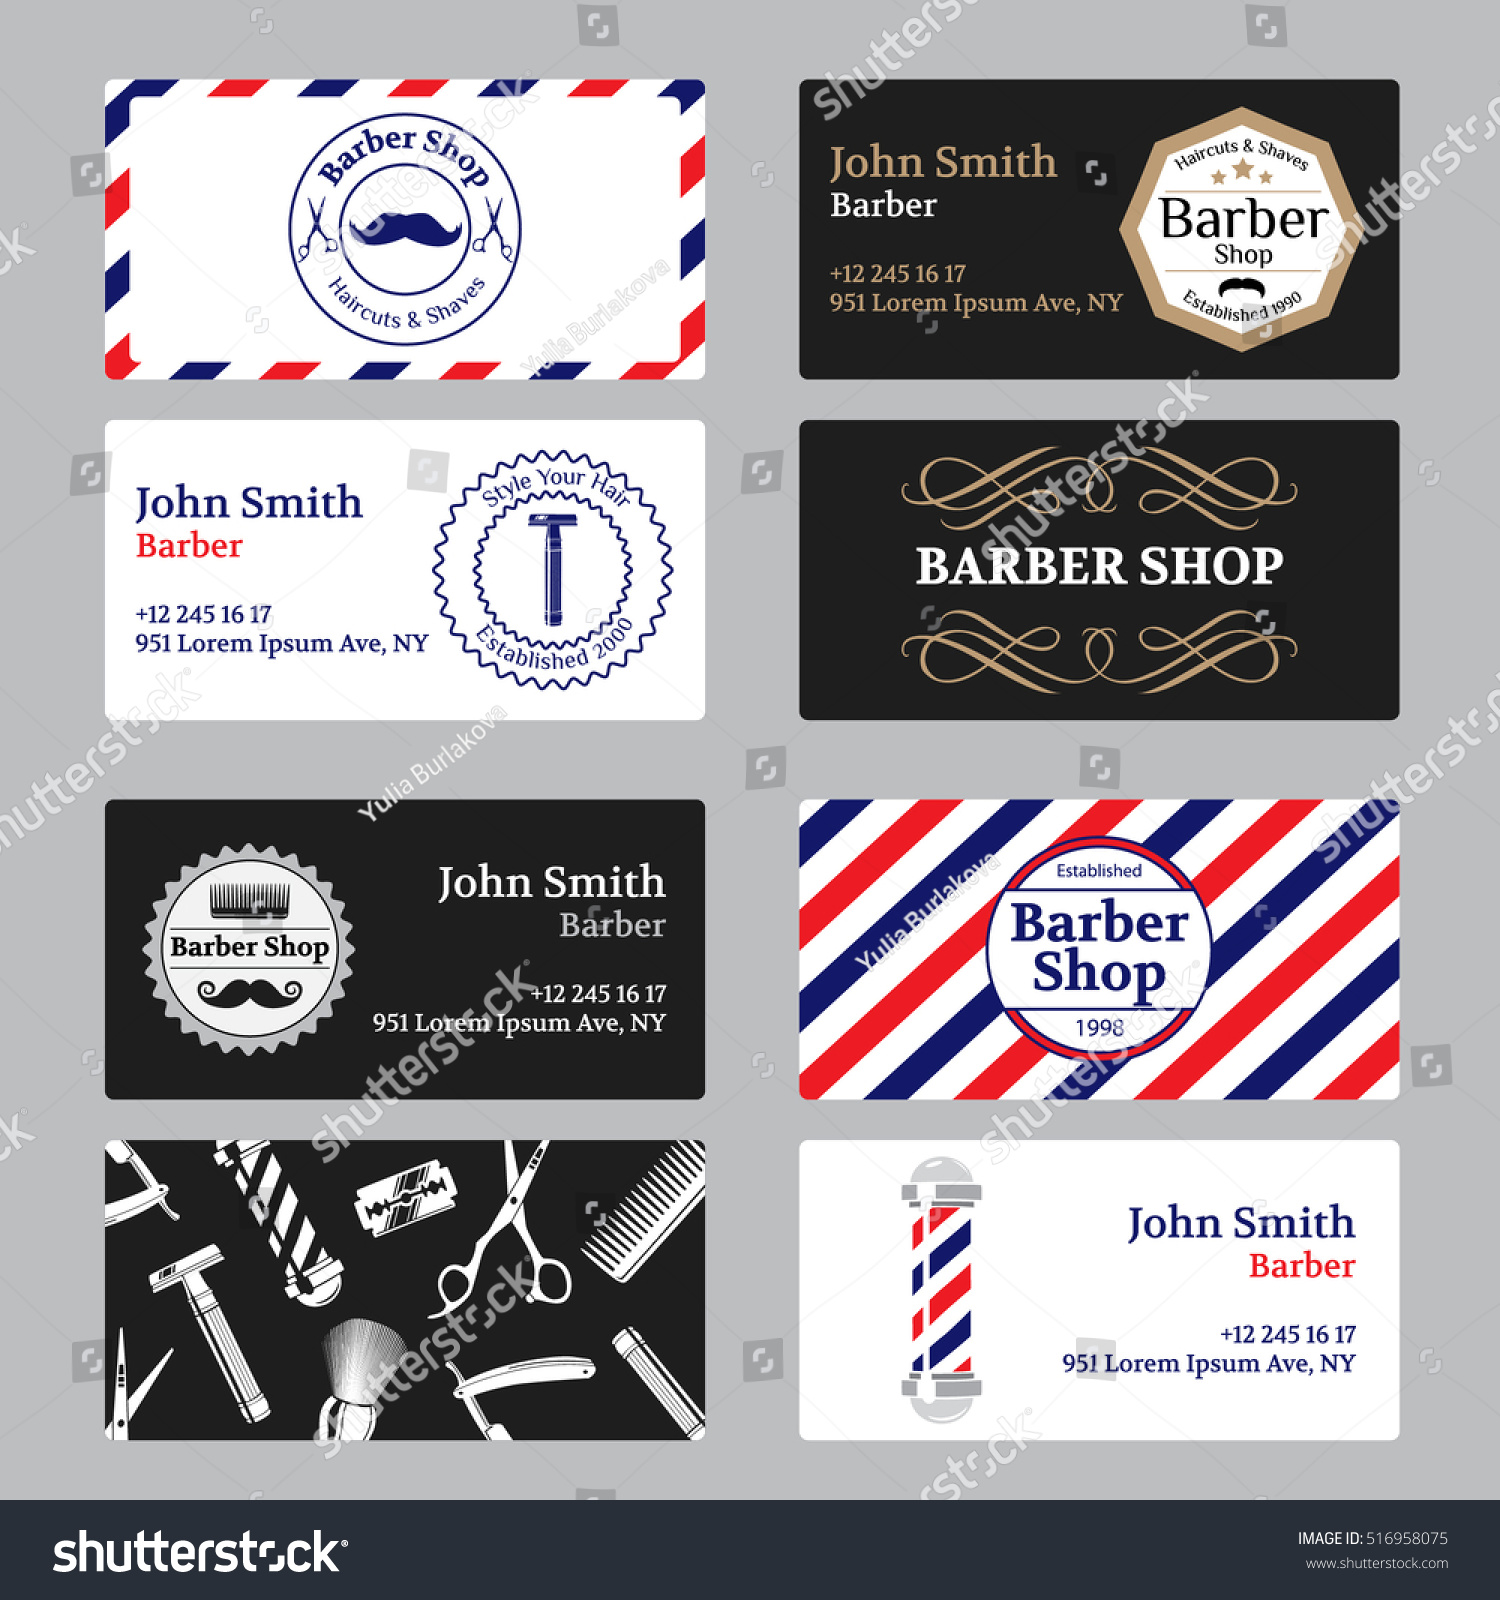 Set barber shop business card on stock vector royalty free set of barber shop business card on black and white background template barber shop business friedricerecipe Image collections